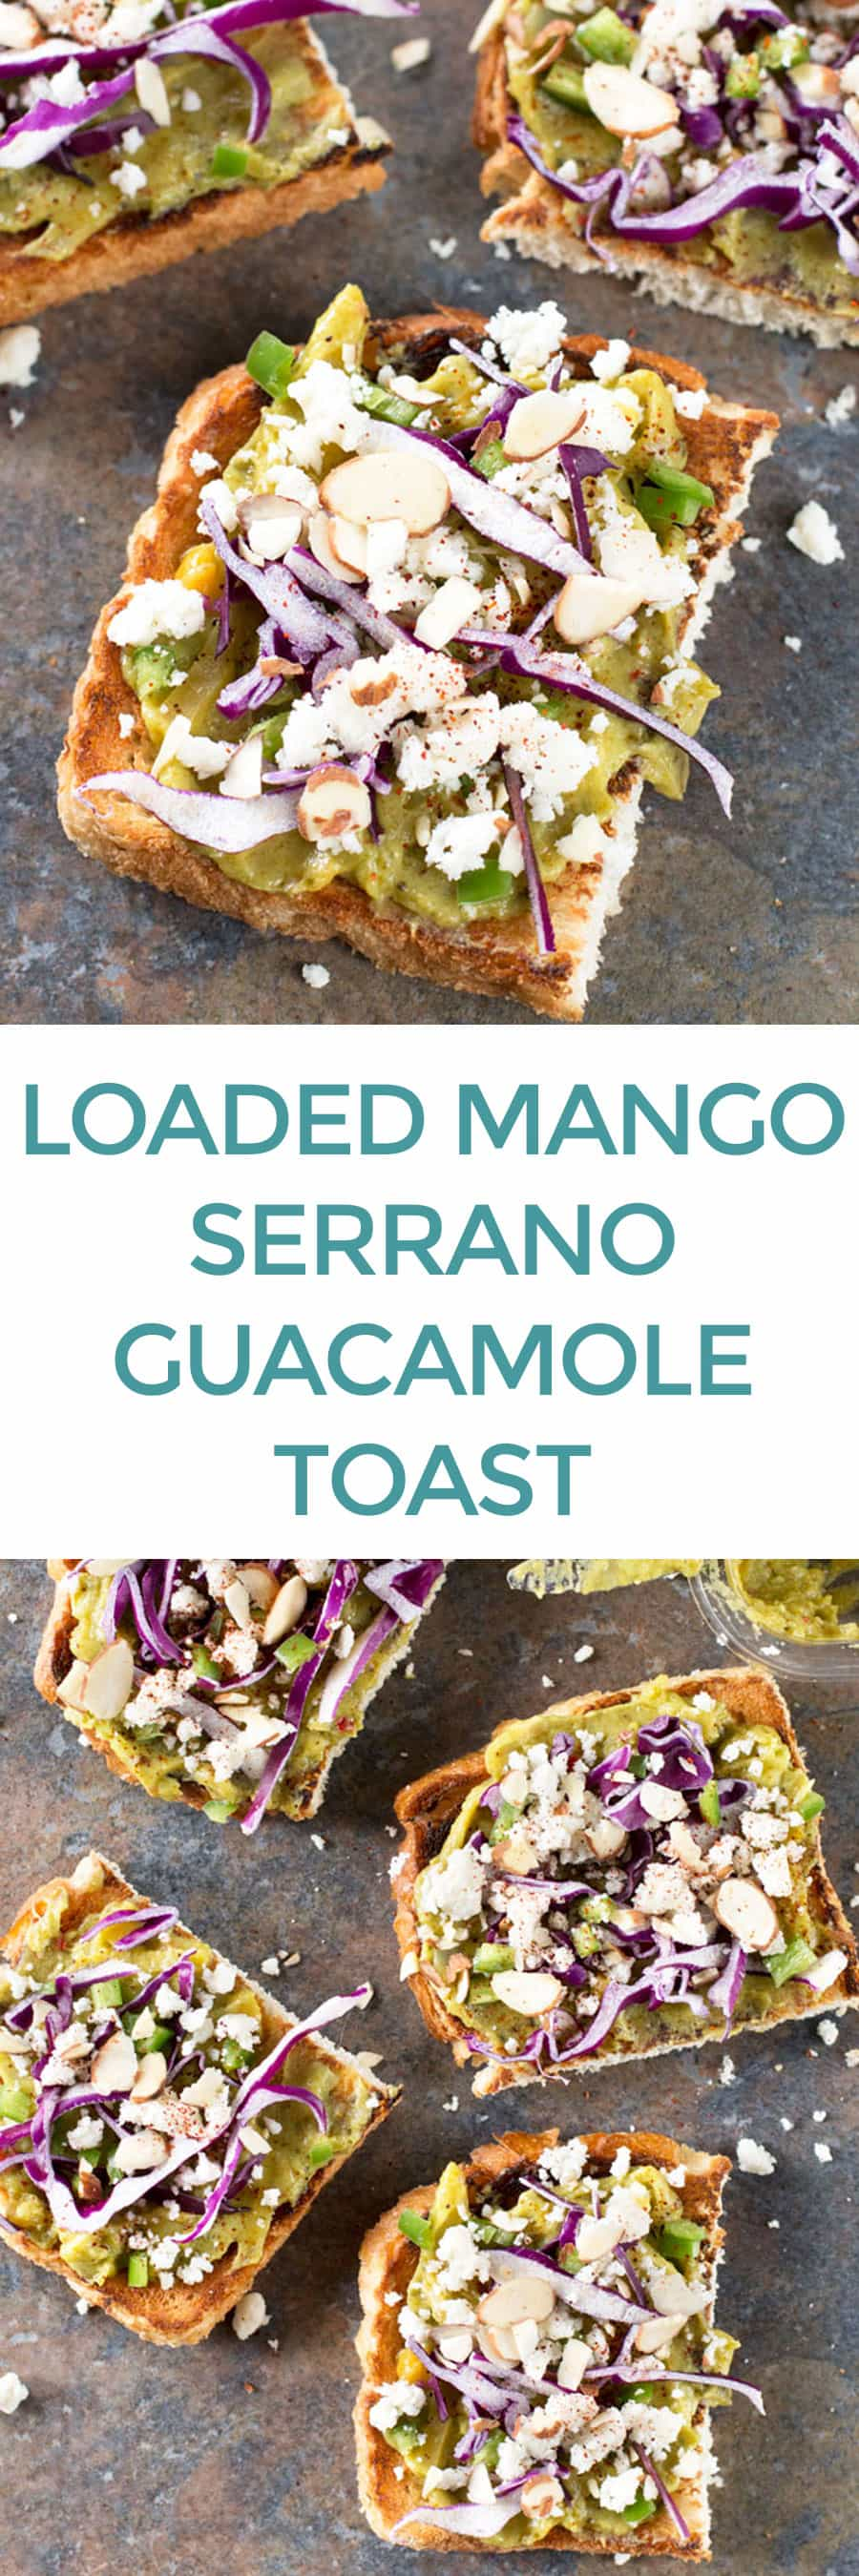 Mango-Serrano-Loaded-Guacamole-Toasts-Pin